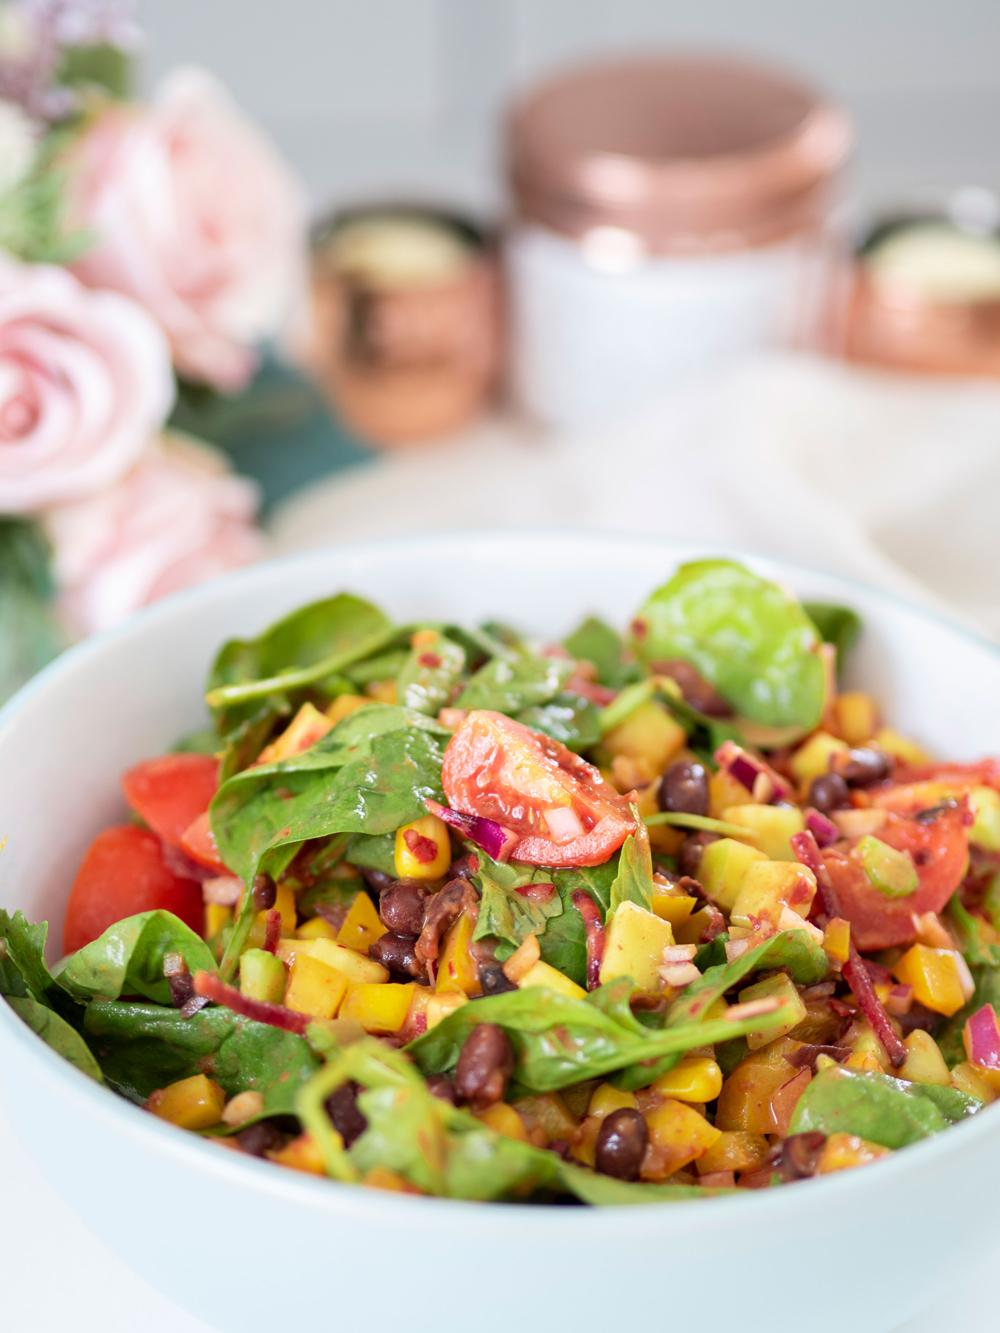 Spicy Warm Bean Salad - cover photo showing a bowl of the salad in front of a backdrop of table flowers and candles.